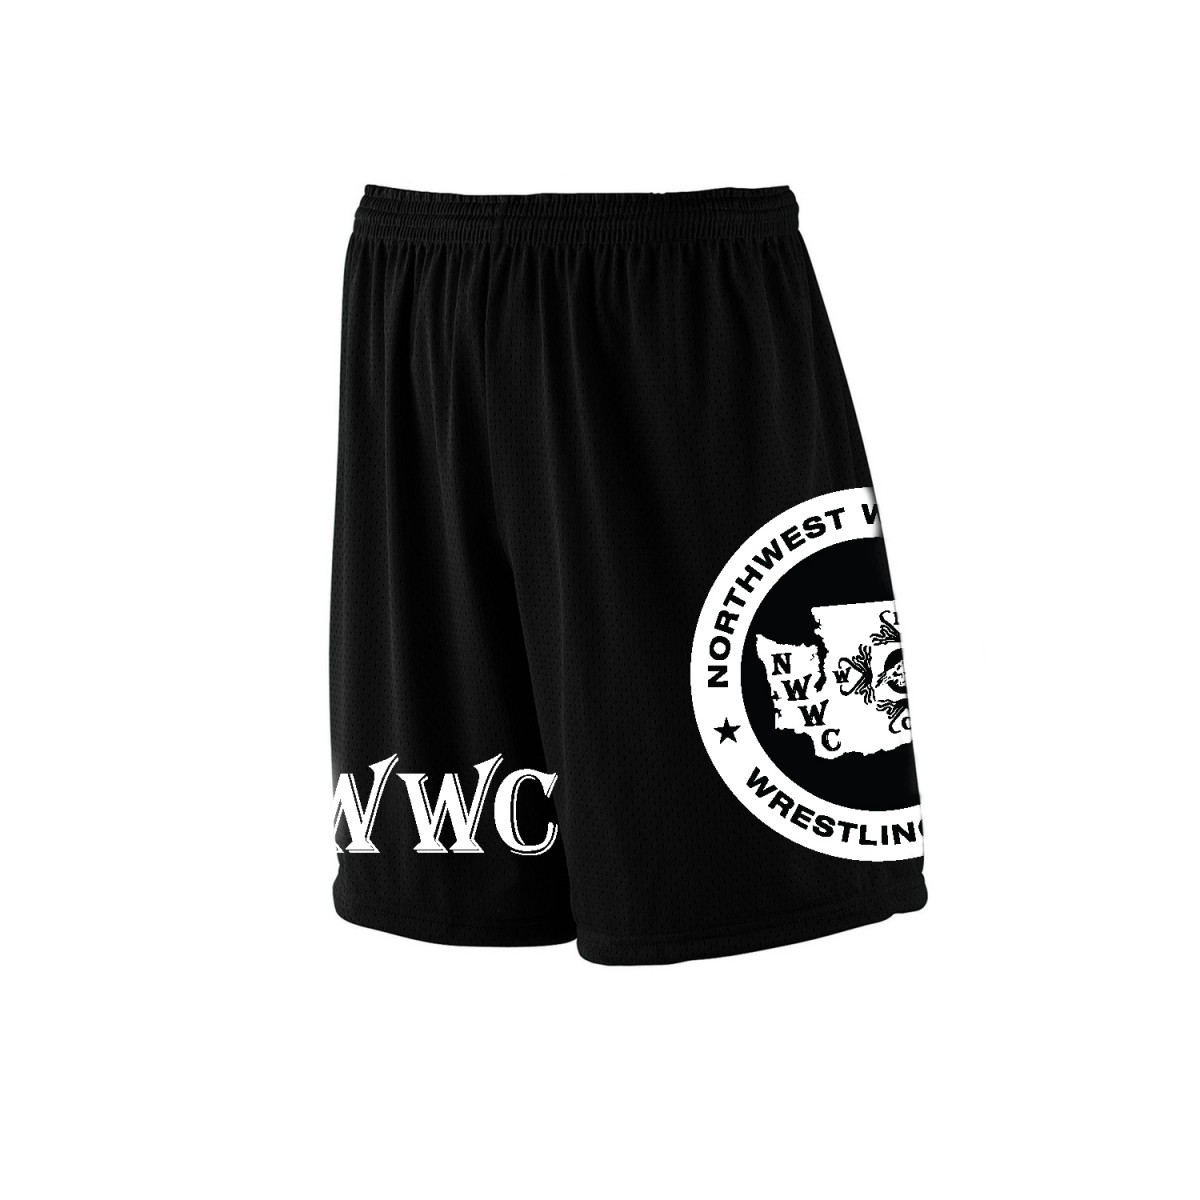 NWWC Black Shorts White Logo-Black-2XL